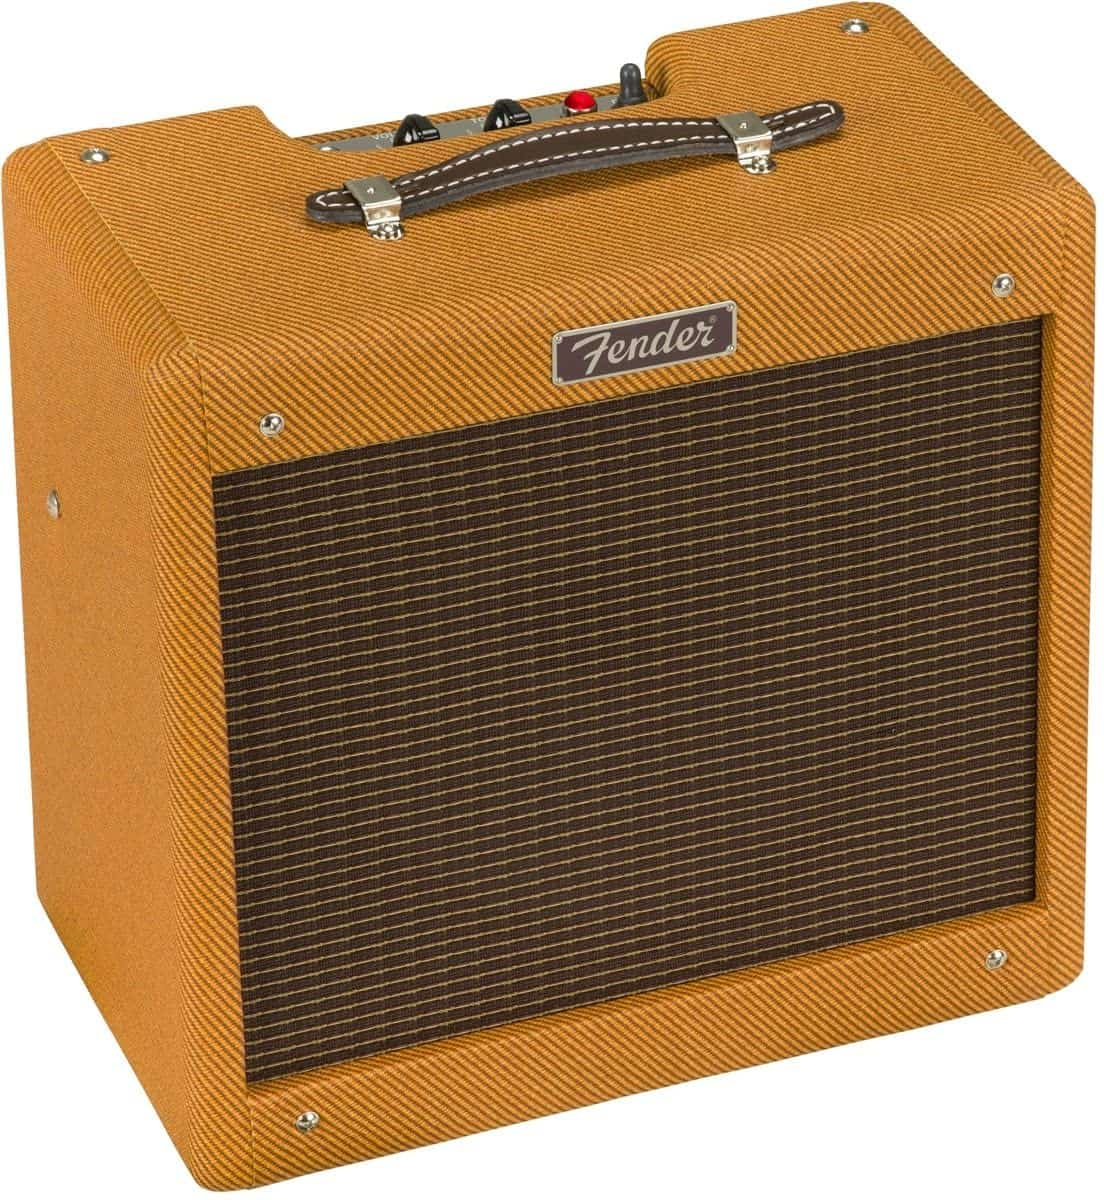 Overall best sound: Fender Pro Junior IV